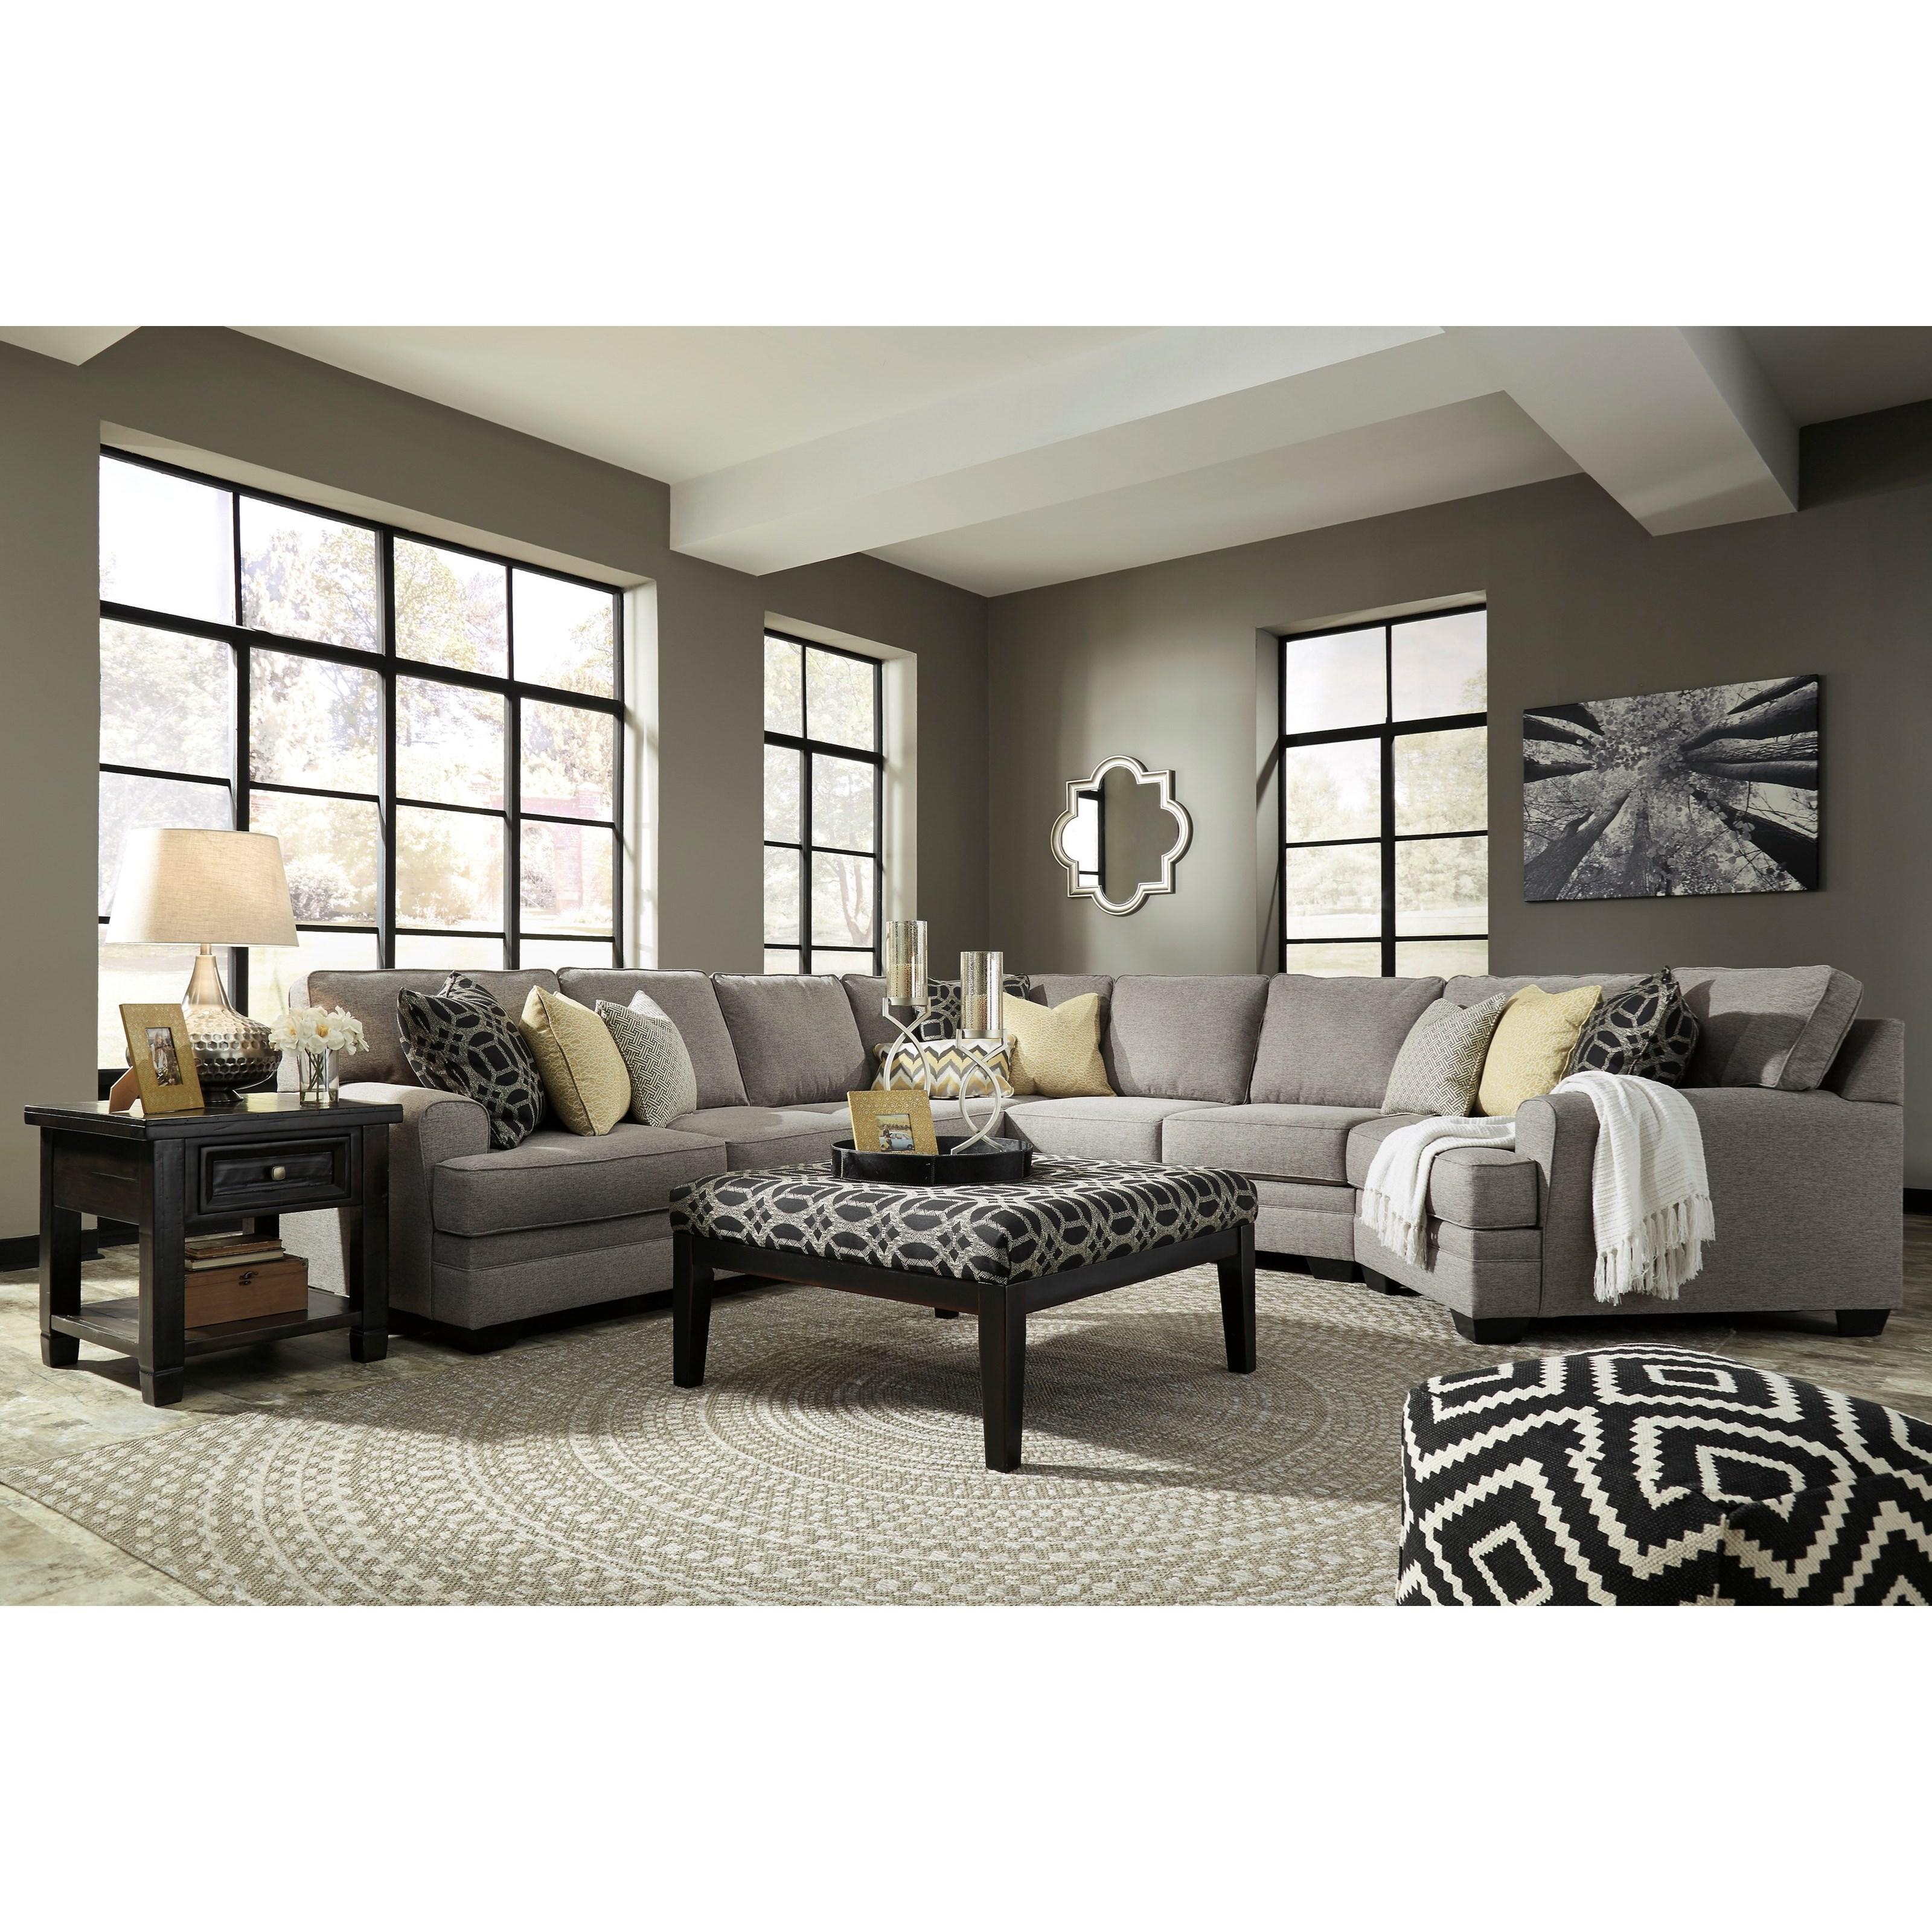 Benchcraft Cresson Stationary Living Room Group - Item Number: 54907 Living Room Group 19